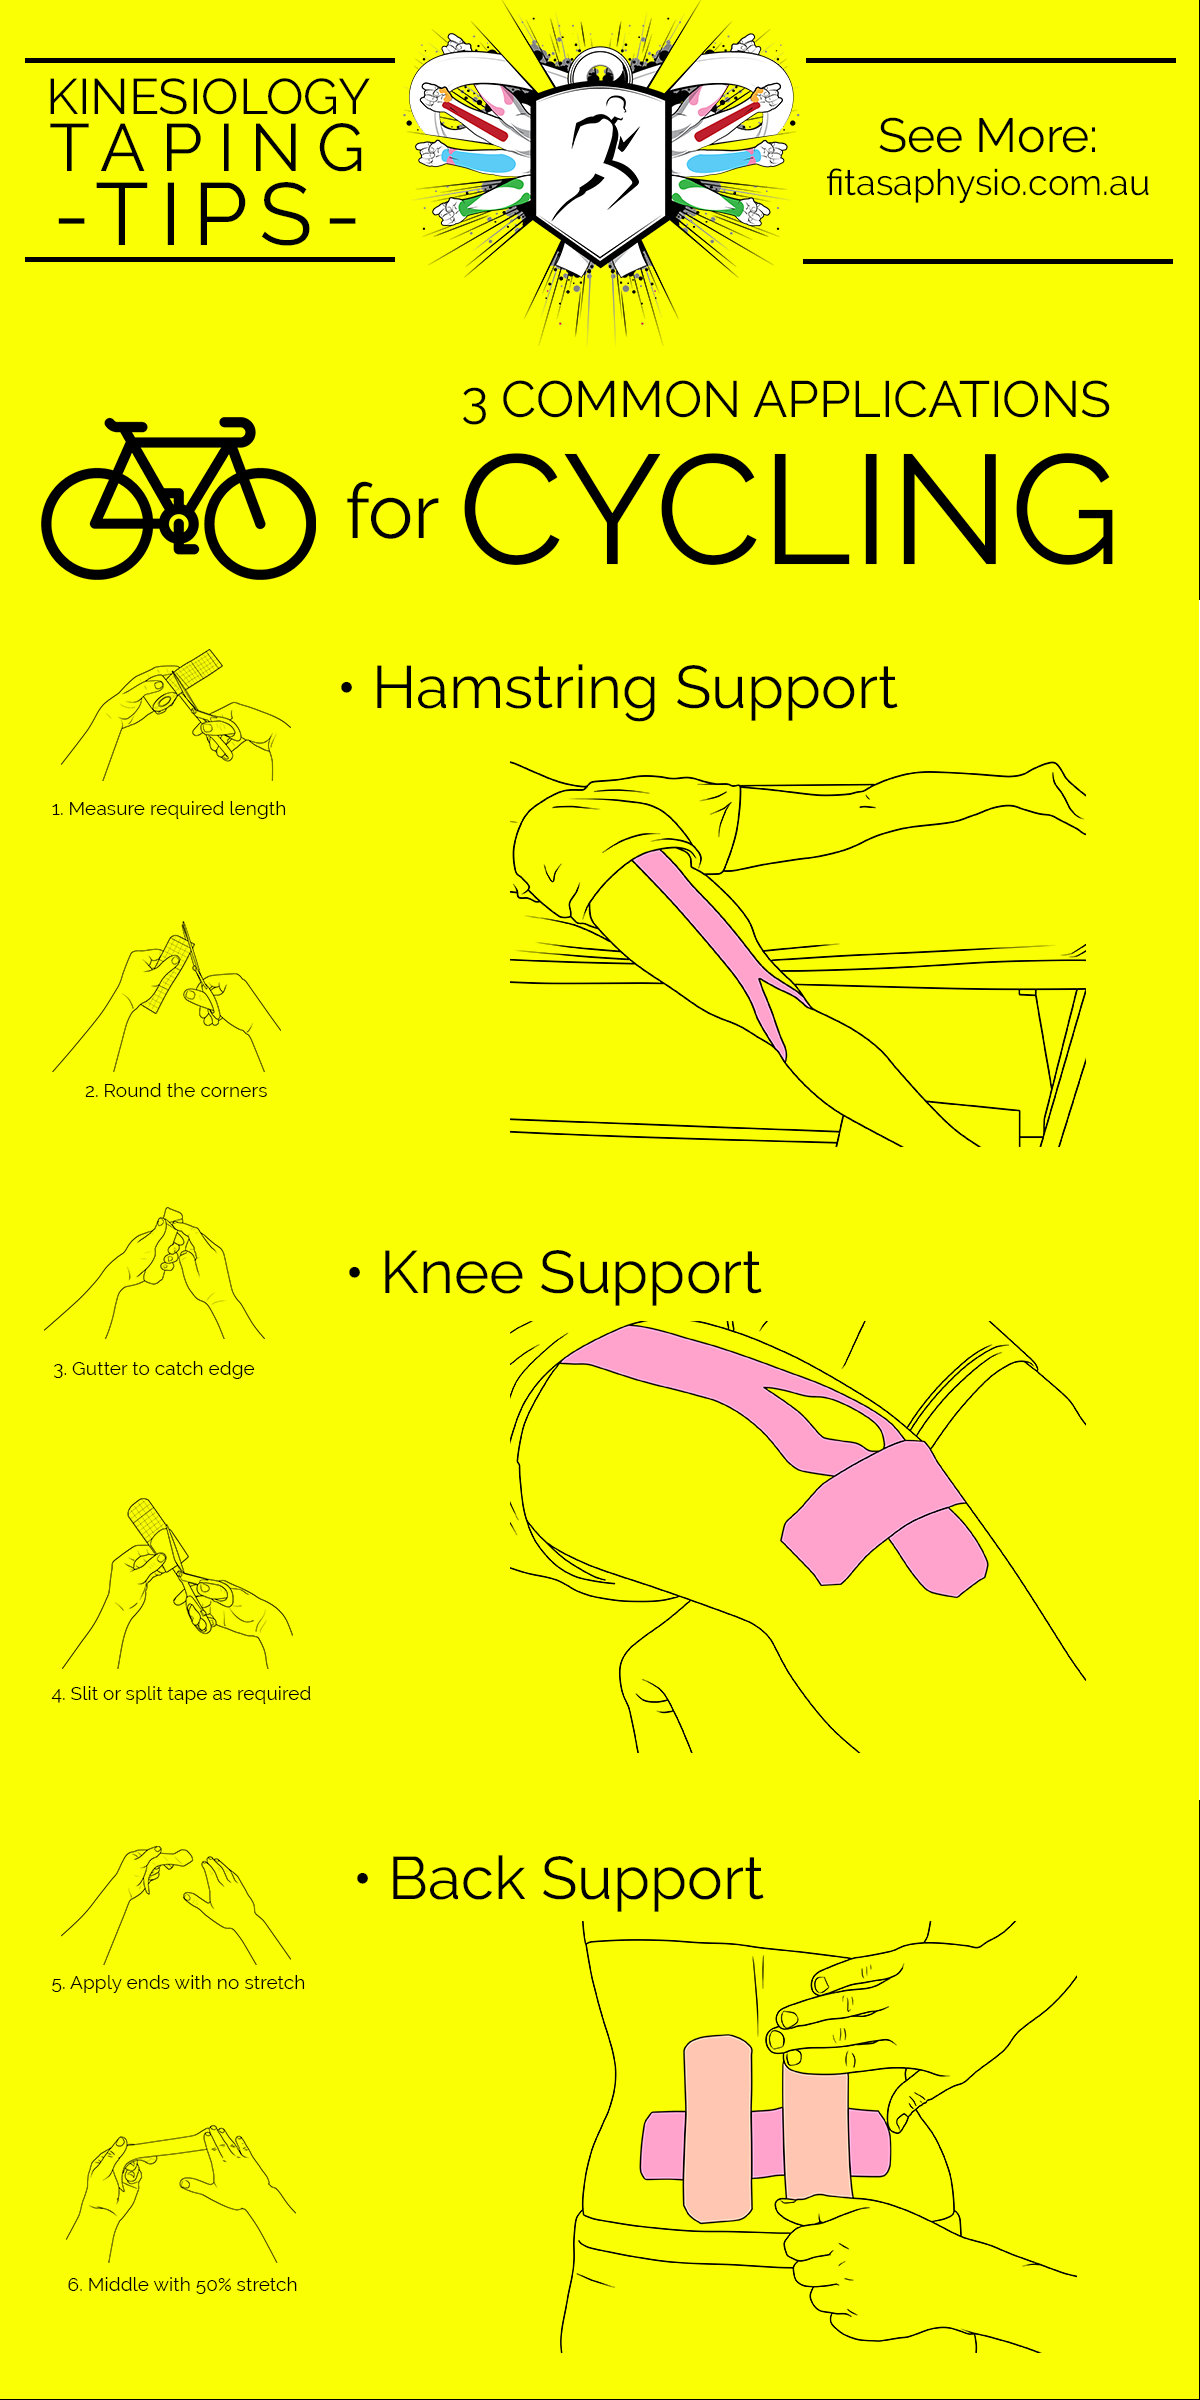 Adventure Cycling Cycling At Its Best With Images Kinesiology